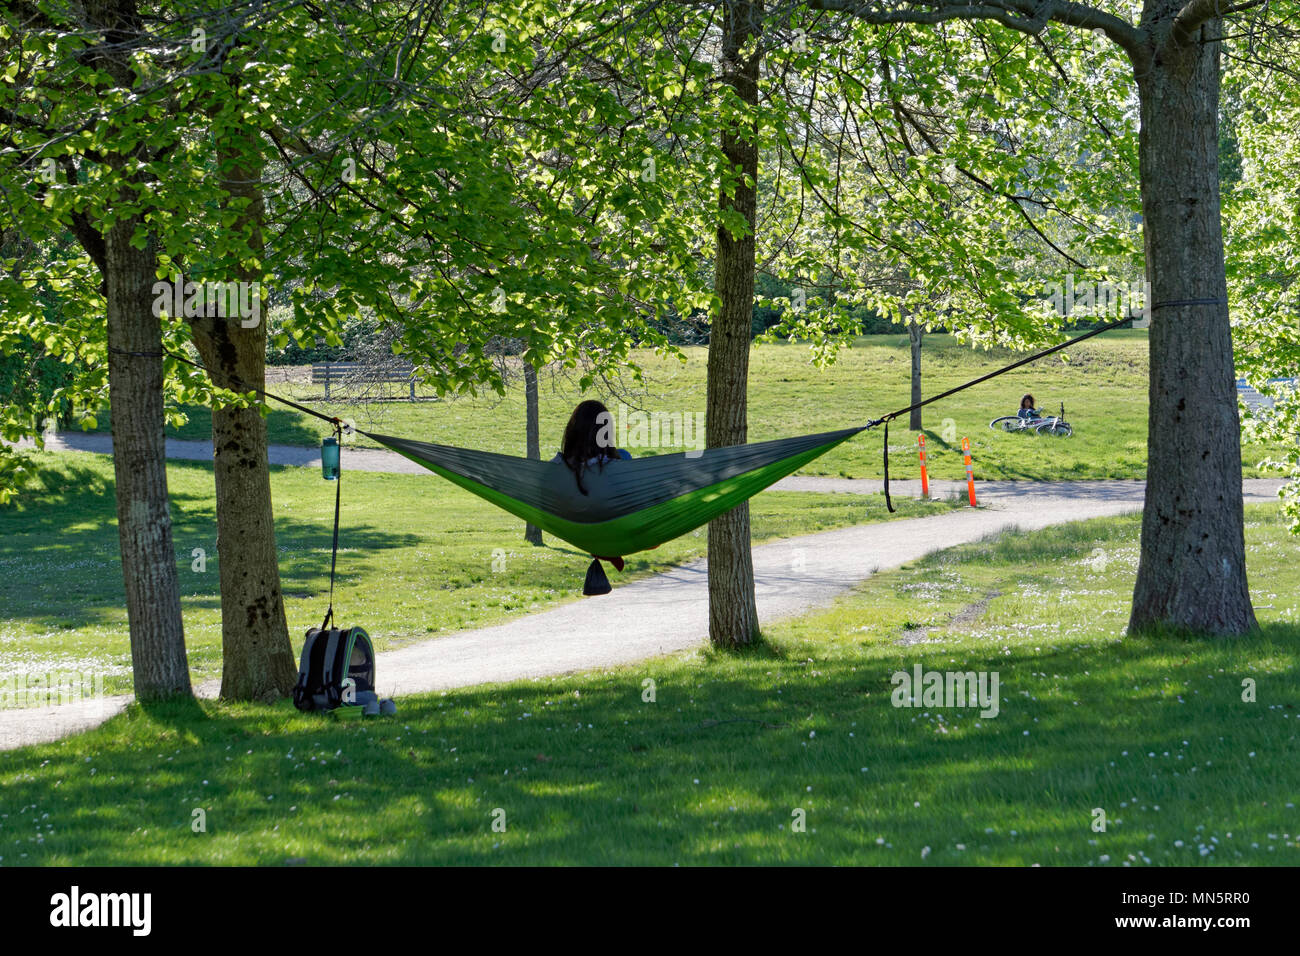 young-woman-relaxing-in-a-hammock-strung